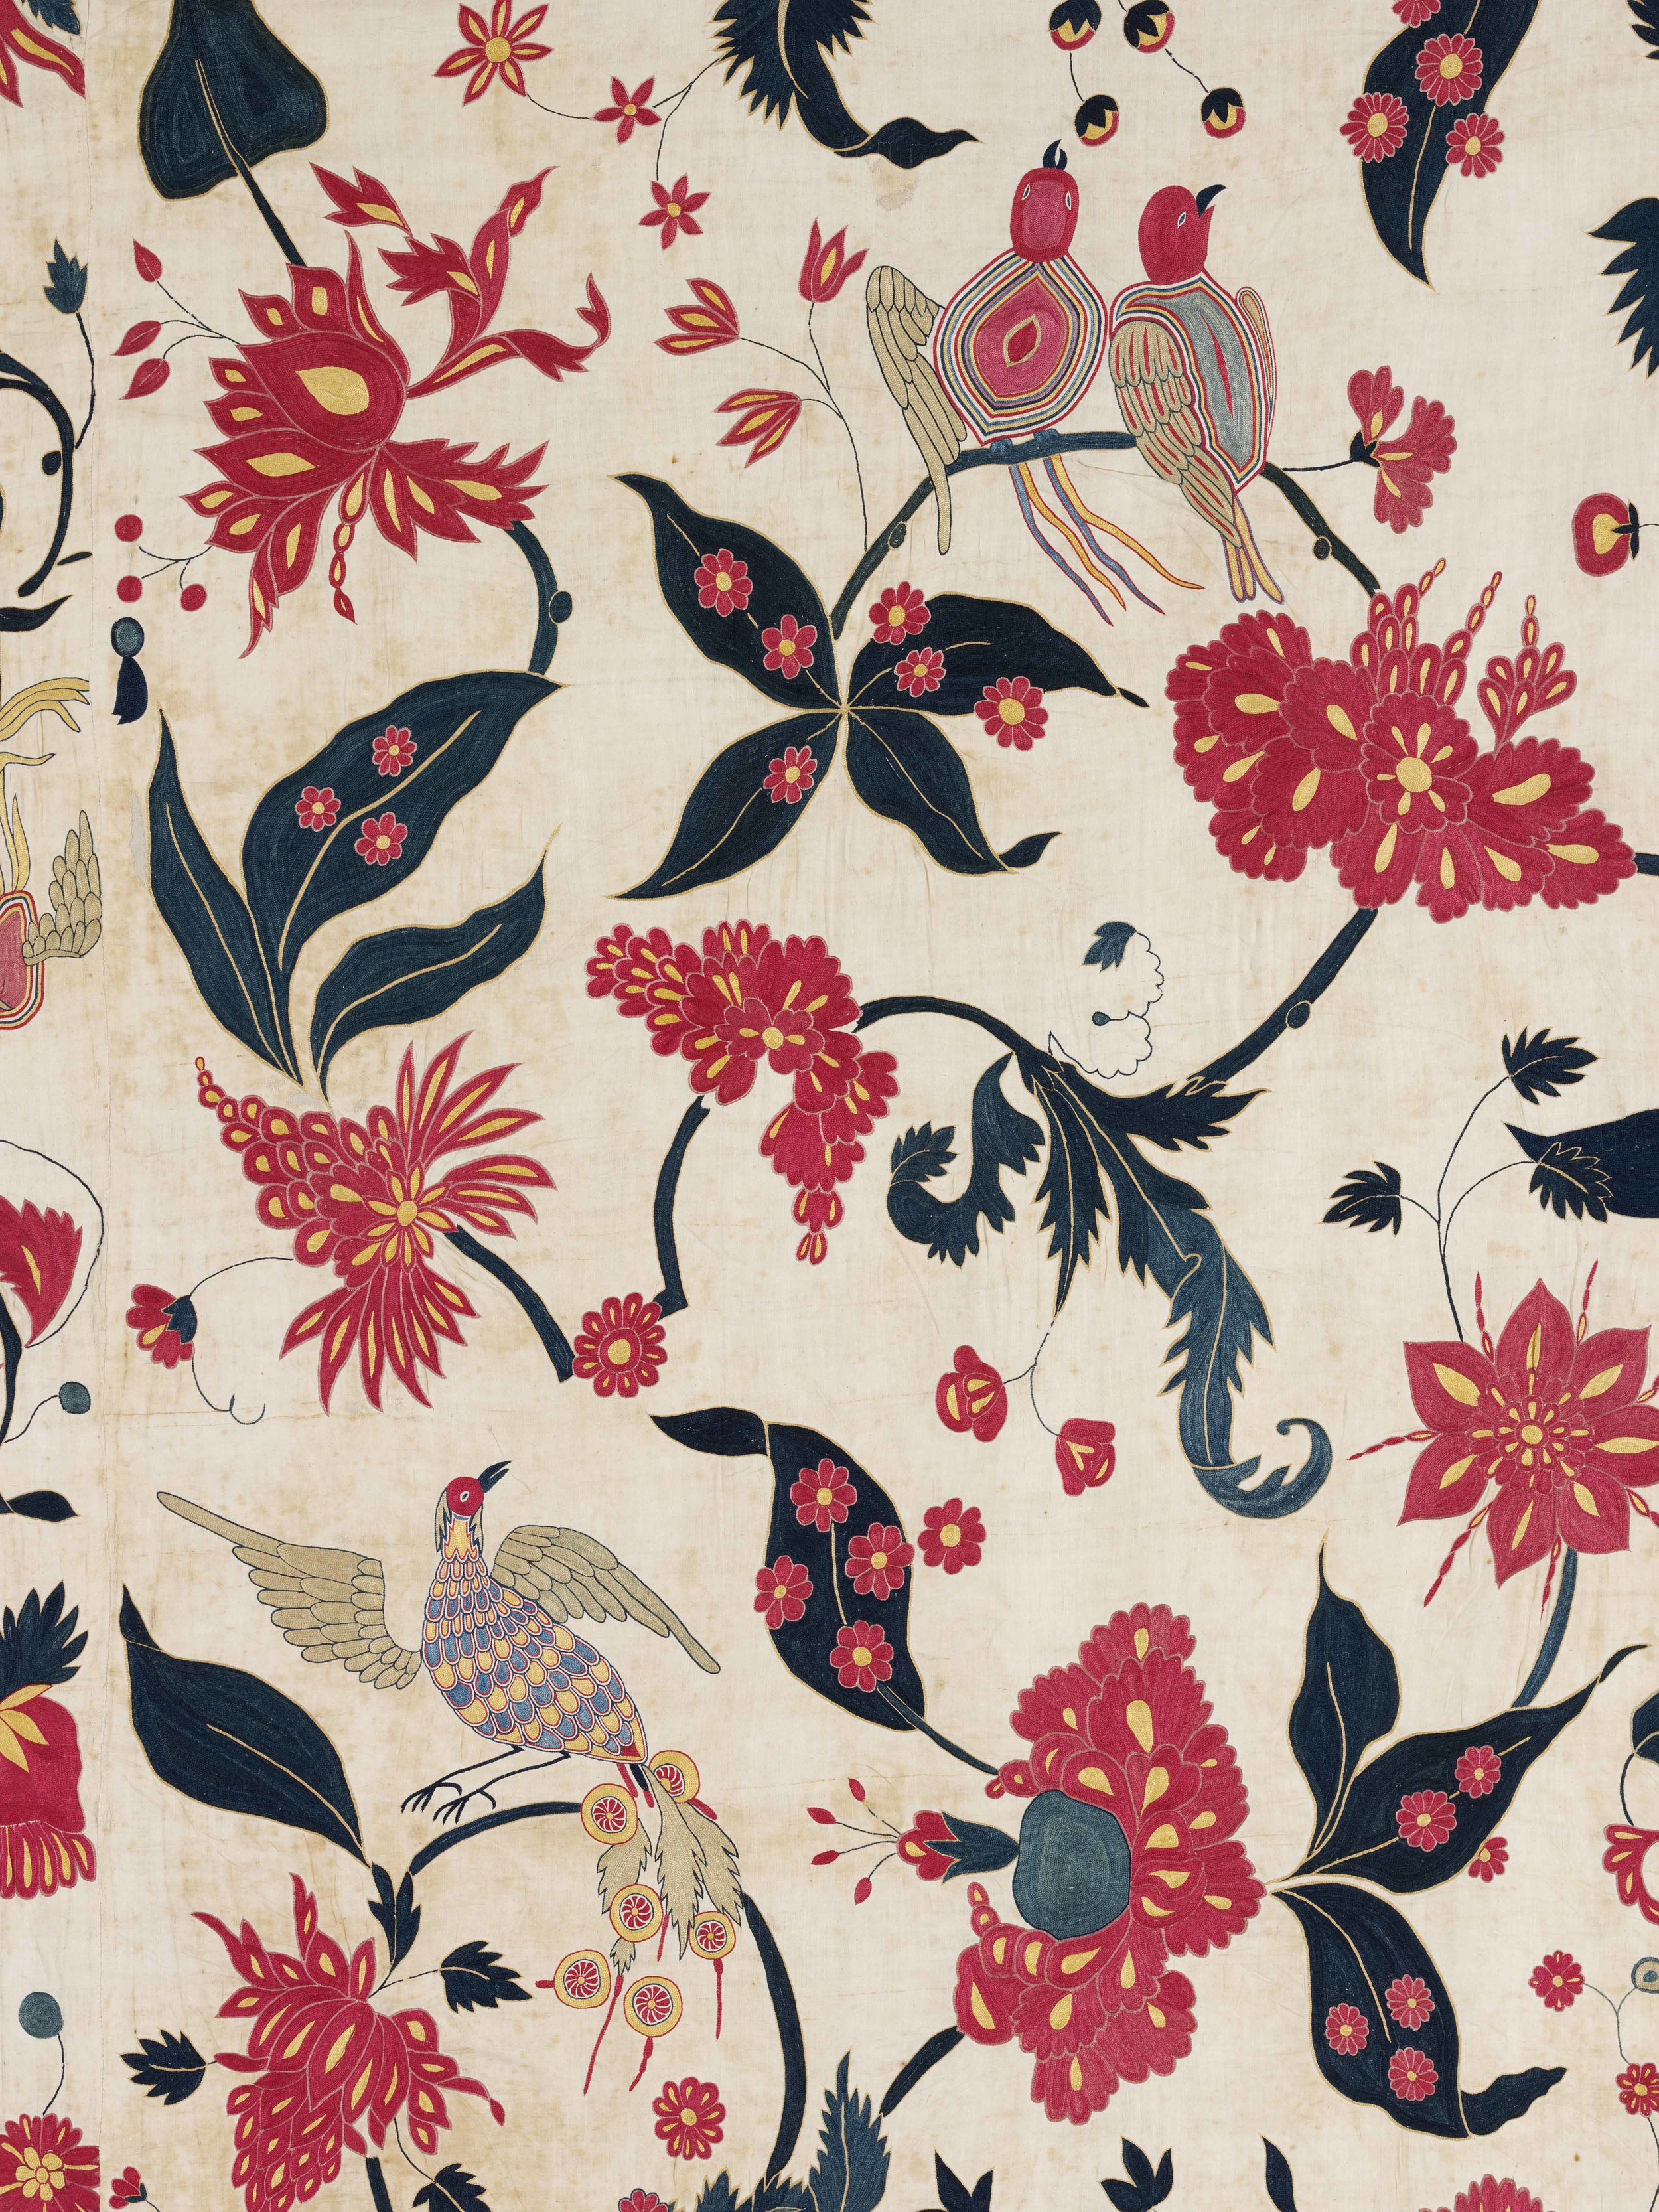 Wall hanging (detail), cotton  appliqué , Gujarat for the Western market, ca. 1700, Victoria and Albert Museum, London